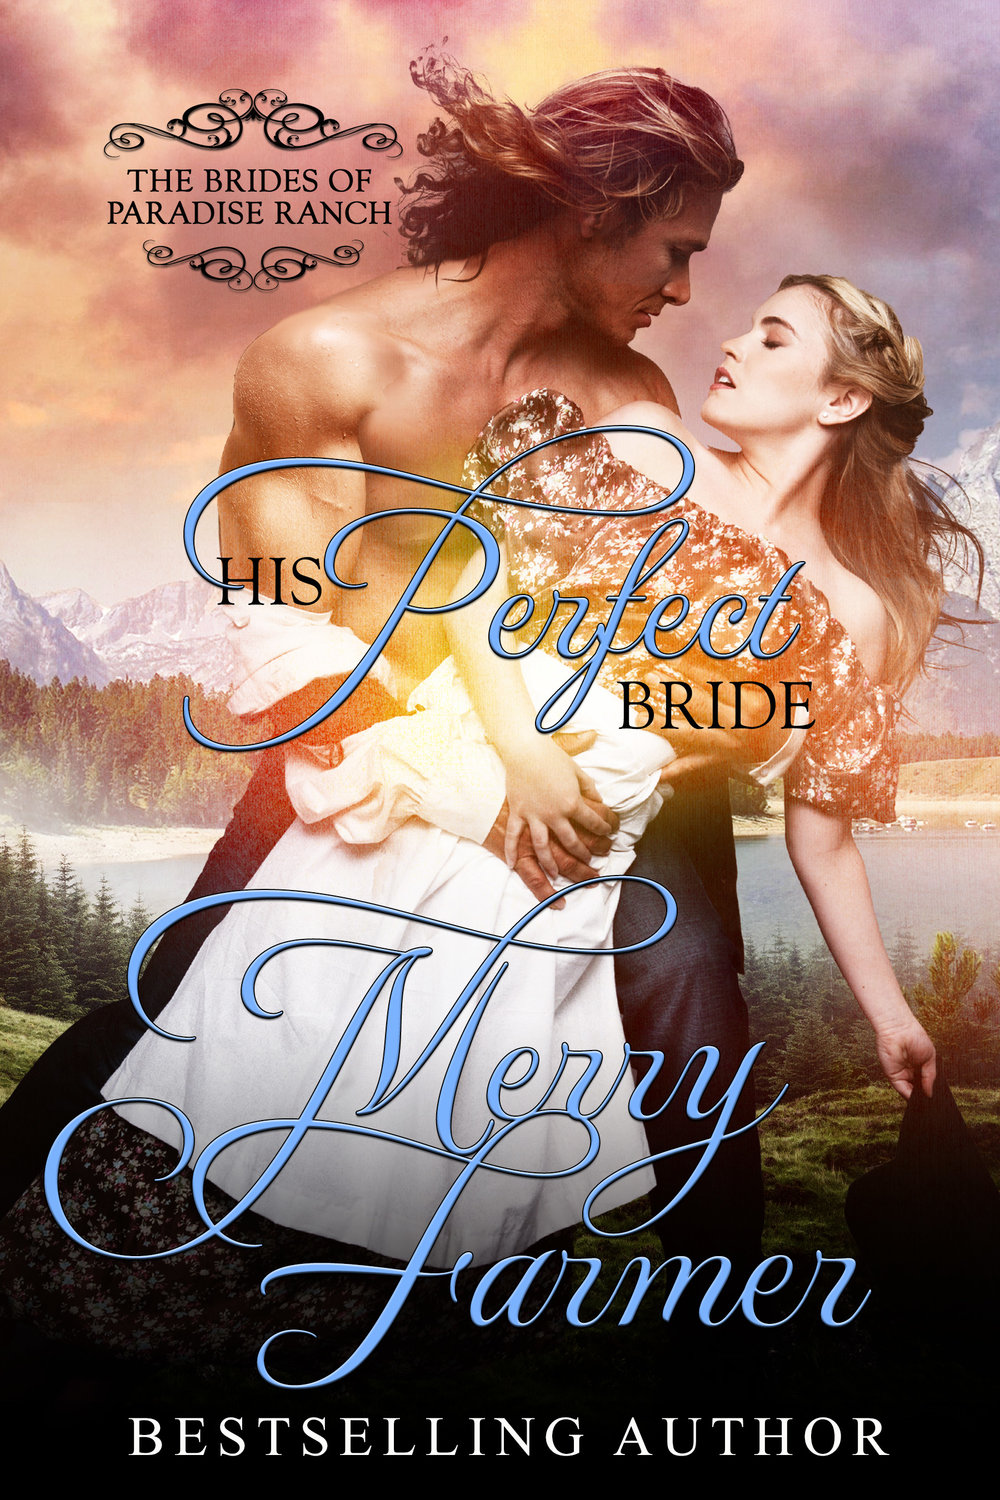 "His Perfect Bride (Book 1) - For Corva Collier, life as a mail-order bride in the quirky town of Haskell, Wyoming is her last chance for escape. She longs for a peaceful life away from the darkness of her past where she can create the paintings that are close to her heart, and where she hopes she can grow to love her husband.But how do you love a man who was persuaded to marry you against his will?Franklin Haskell never planned to marry. What woman would want a man who was crippled due to his own arrogance? But when he is offered the chance to help a woman in crisis, he agrees to wed. Corva is so much more than he expected, and when a baseball game gives her the chance to shine, he loses his heart.But how do you tell a woman you love her when she deserves so much better?The game of love has never been so hard to play…or so worth winning.PLEASE BE ADVISED: Steam Level = HOTIf you would like to read this story without any ""scenes,"" check out Corva: The Perfect Bride"